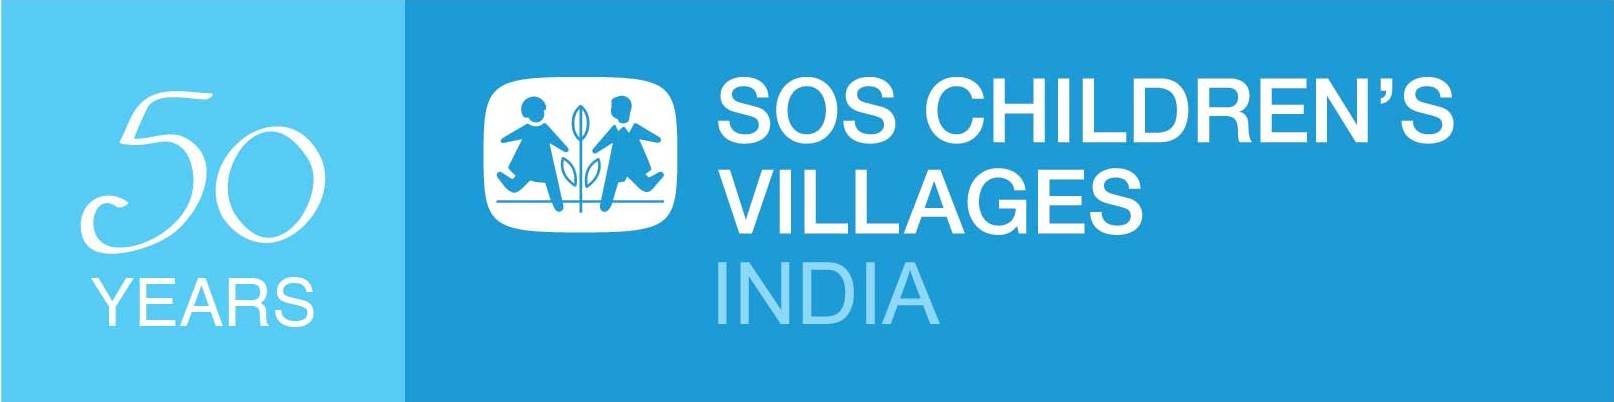 SOS Children's Villages of India